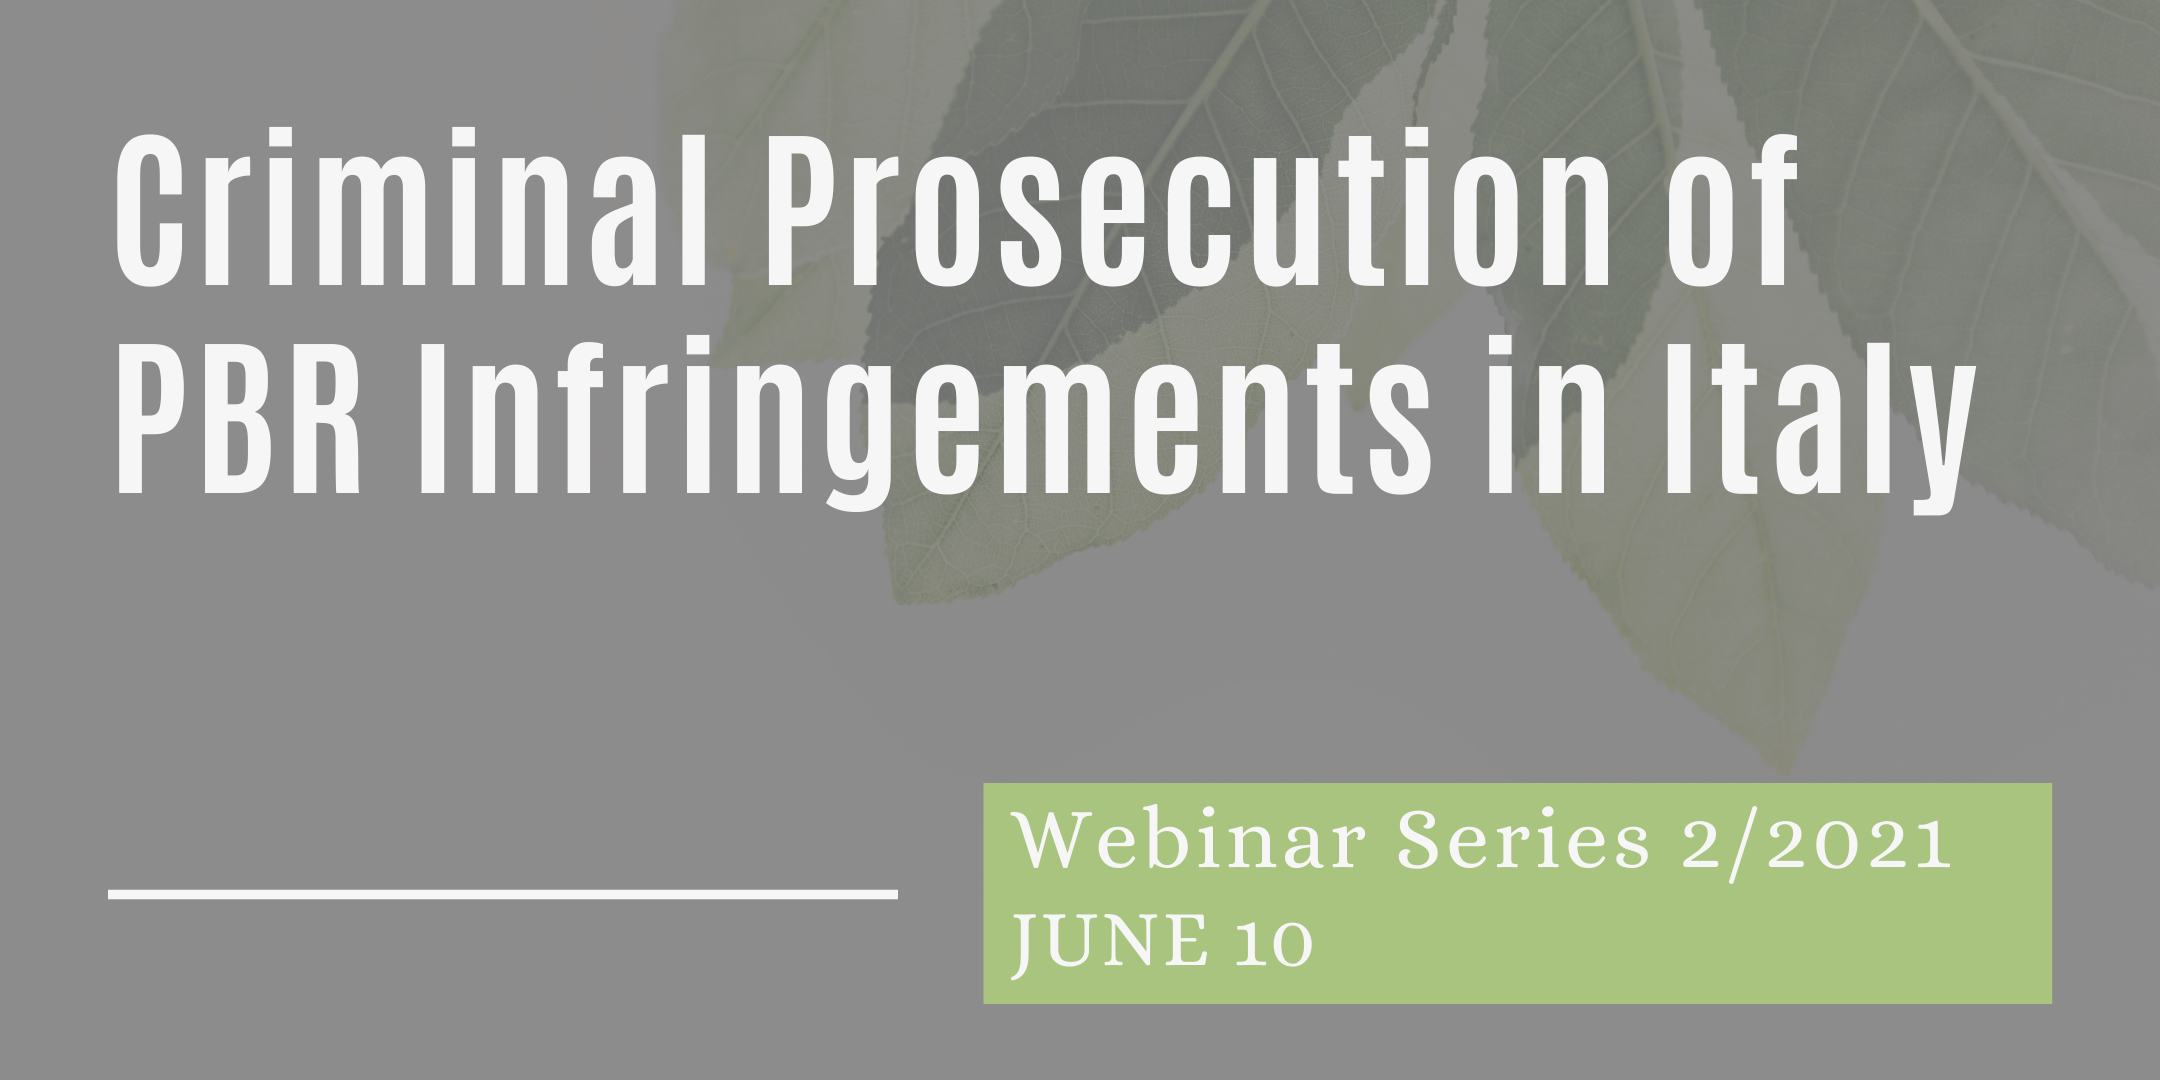 10/06/2021 – Criminal Prosecution of PBR Infringement Cases in Italy: Procedural Aspects and Case Law